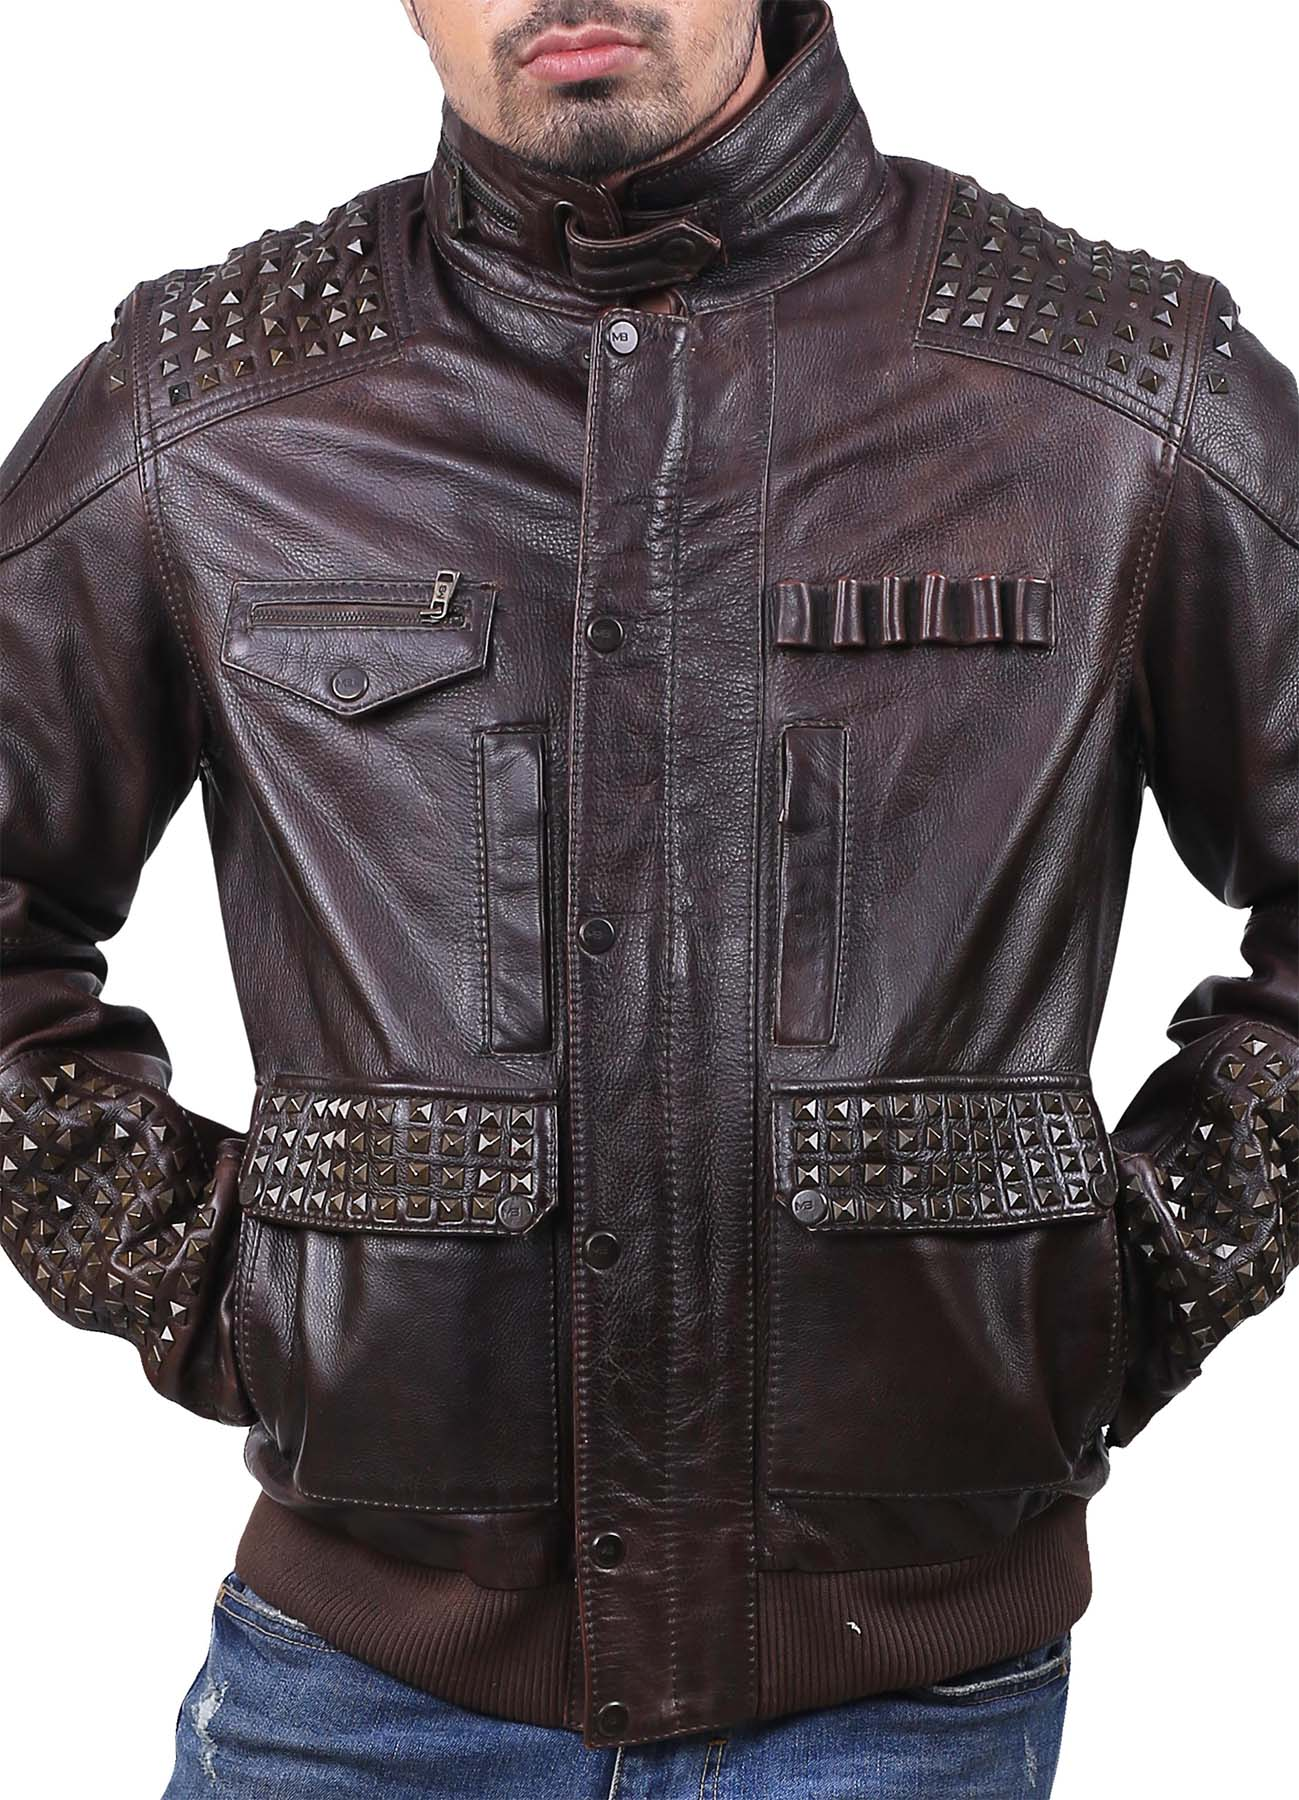 Strauss Bullet Studded Leather Jacket - American Jacket